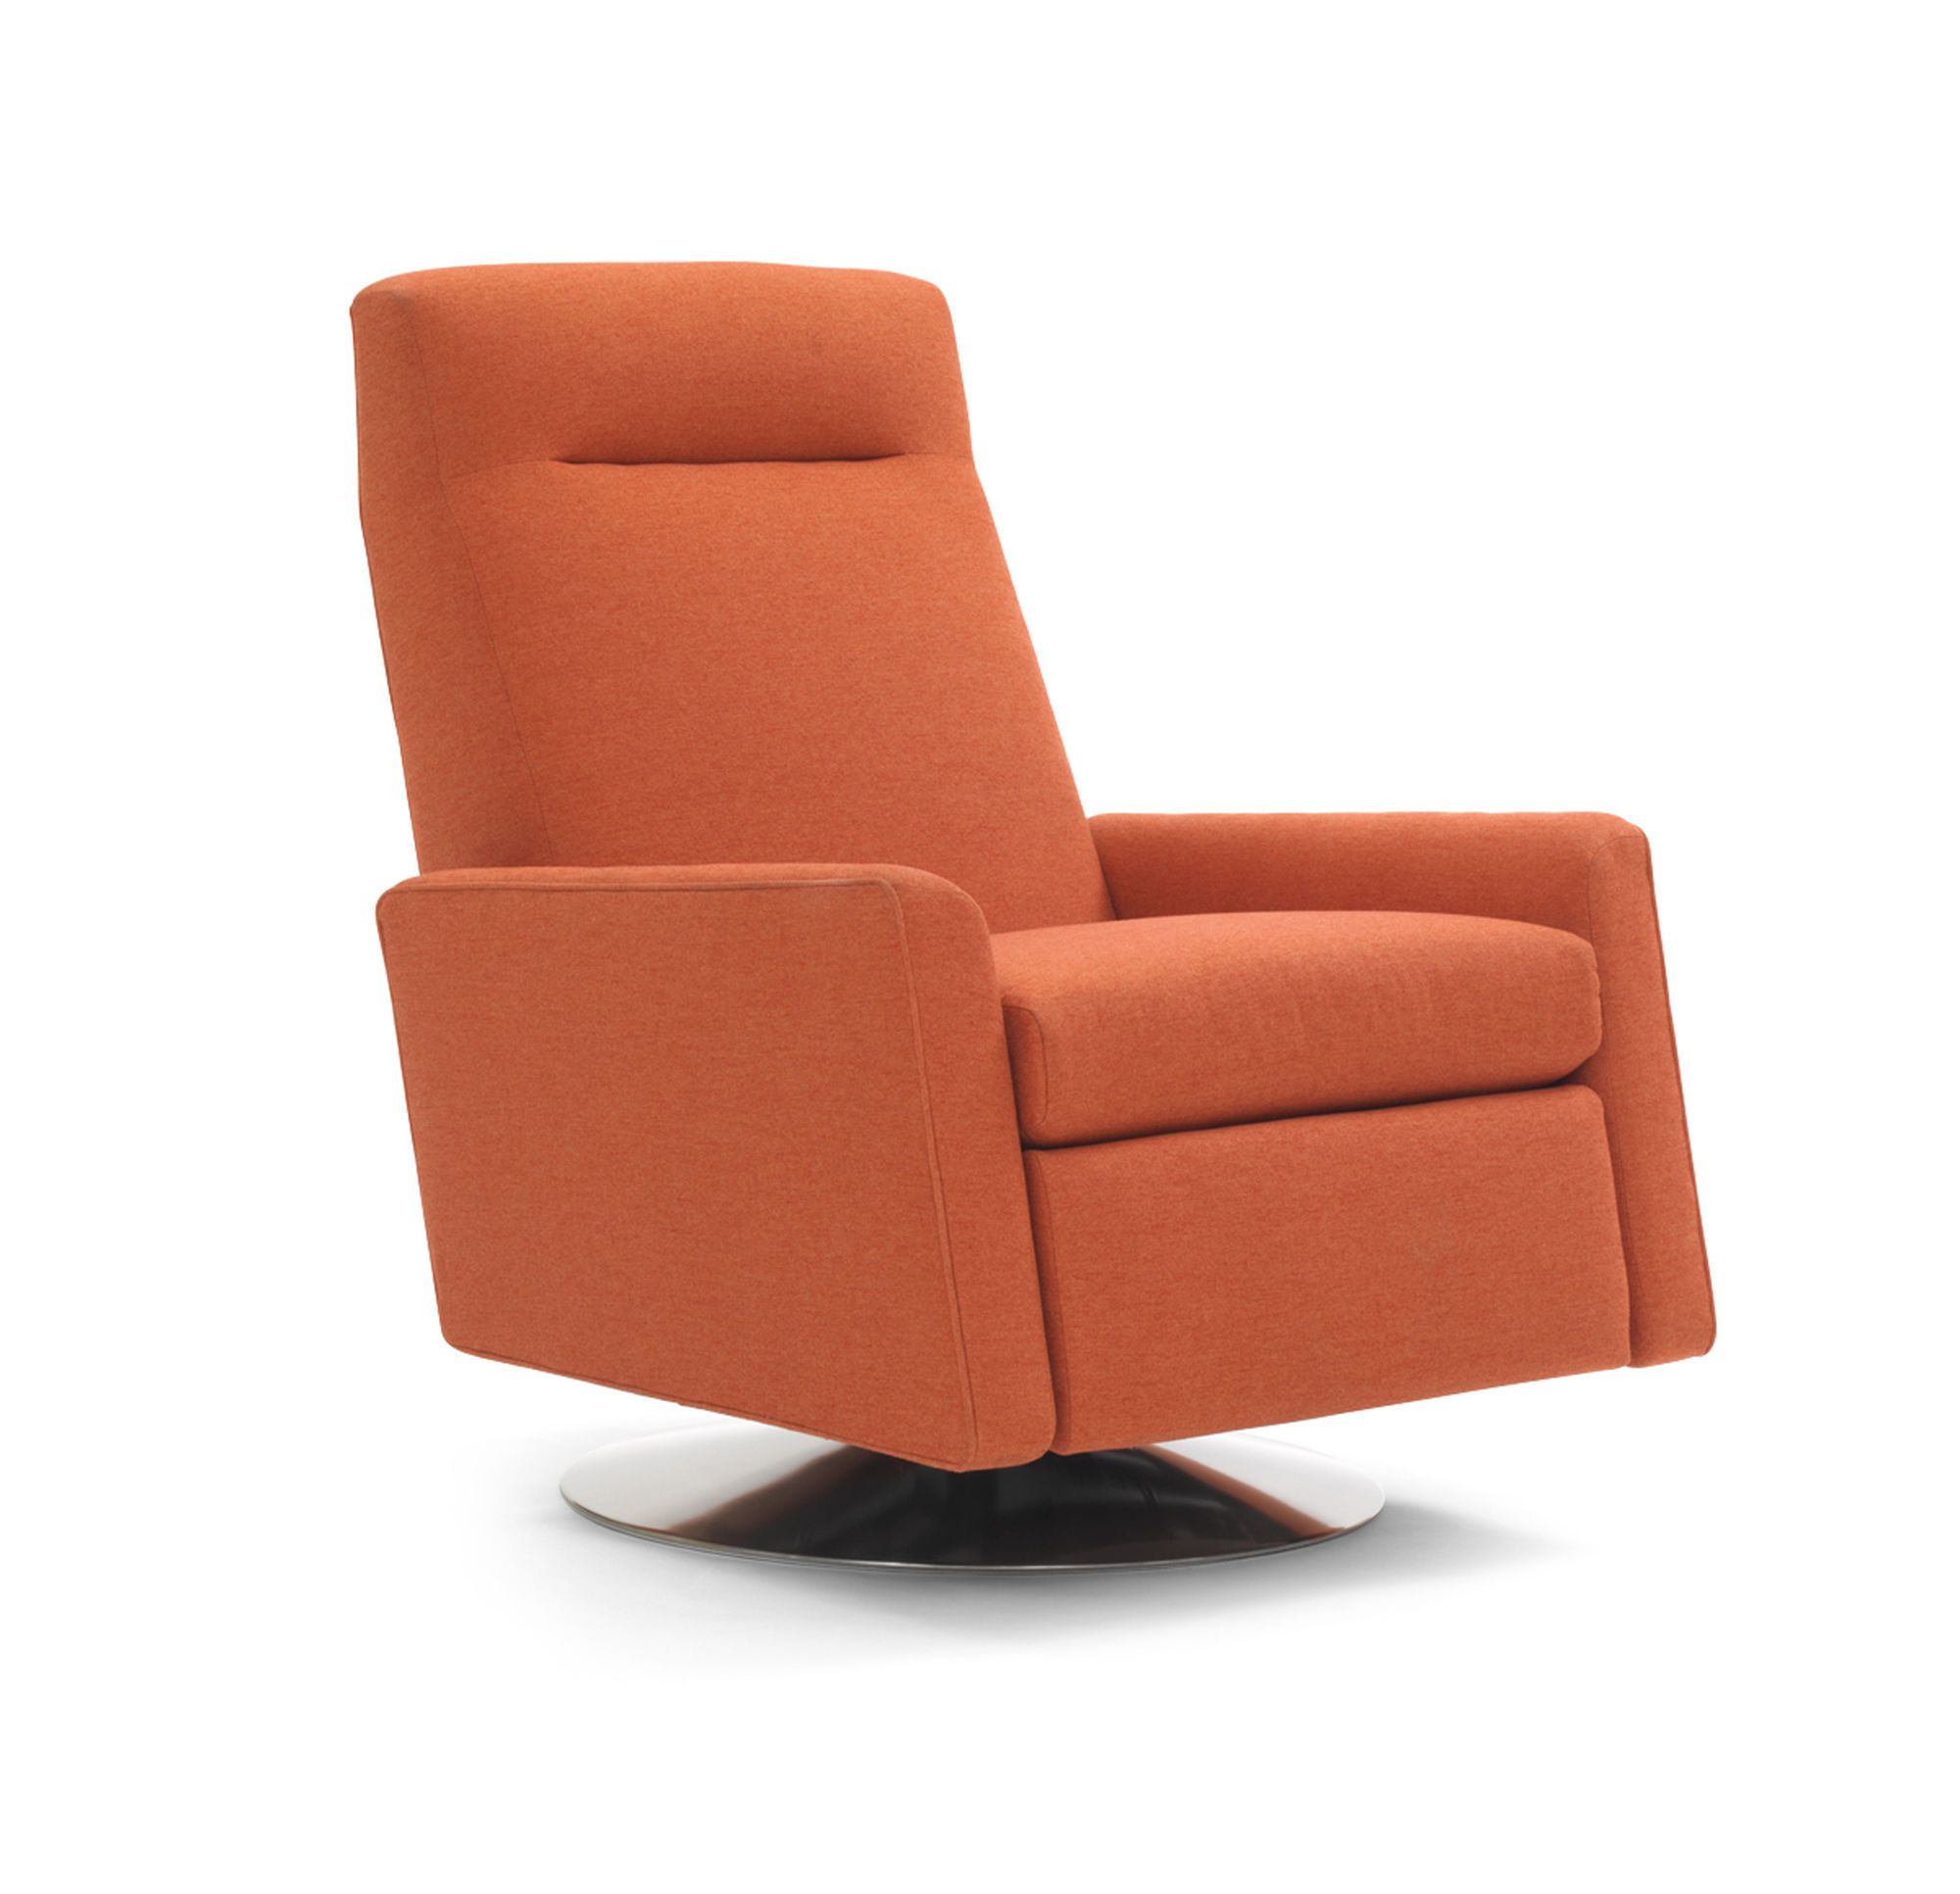 Mgbw Tilton Recliner Phipps Orange Hi Res Swivel